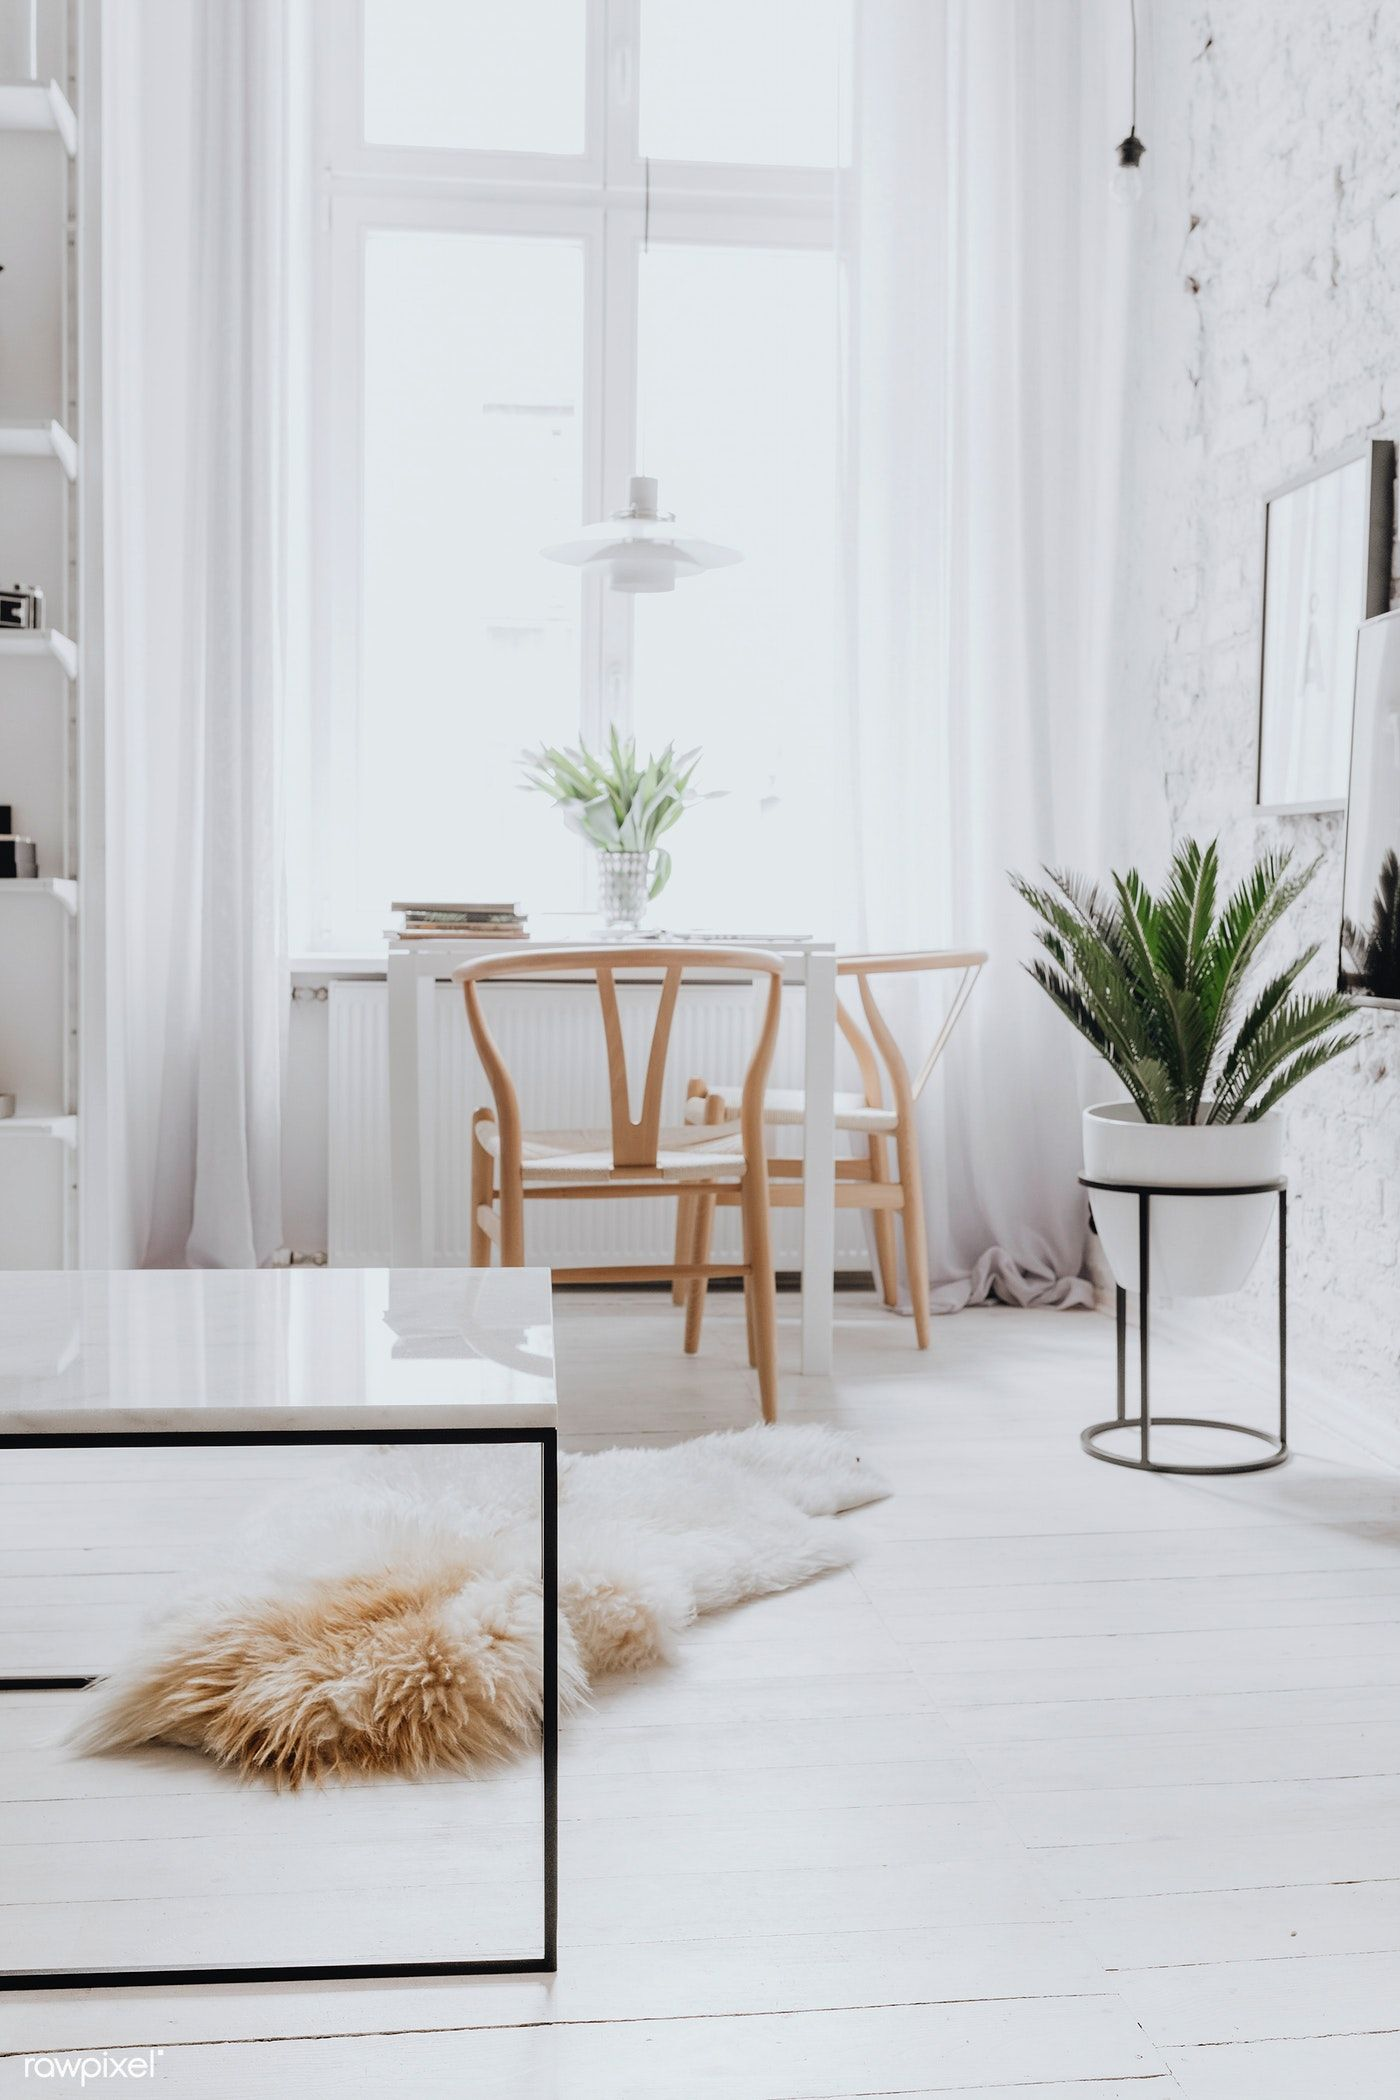 Modern And Stylish Apartment Free Image By Rawpixel Com